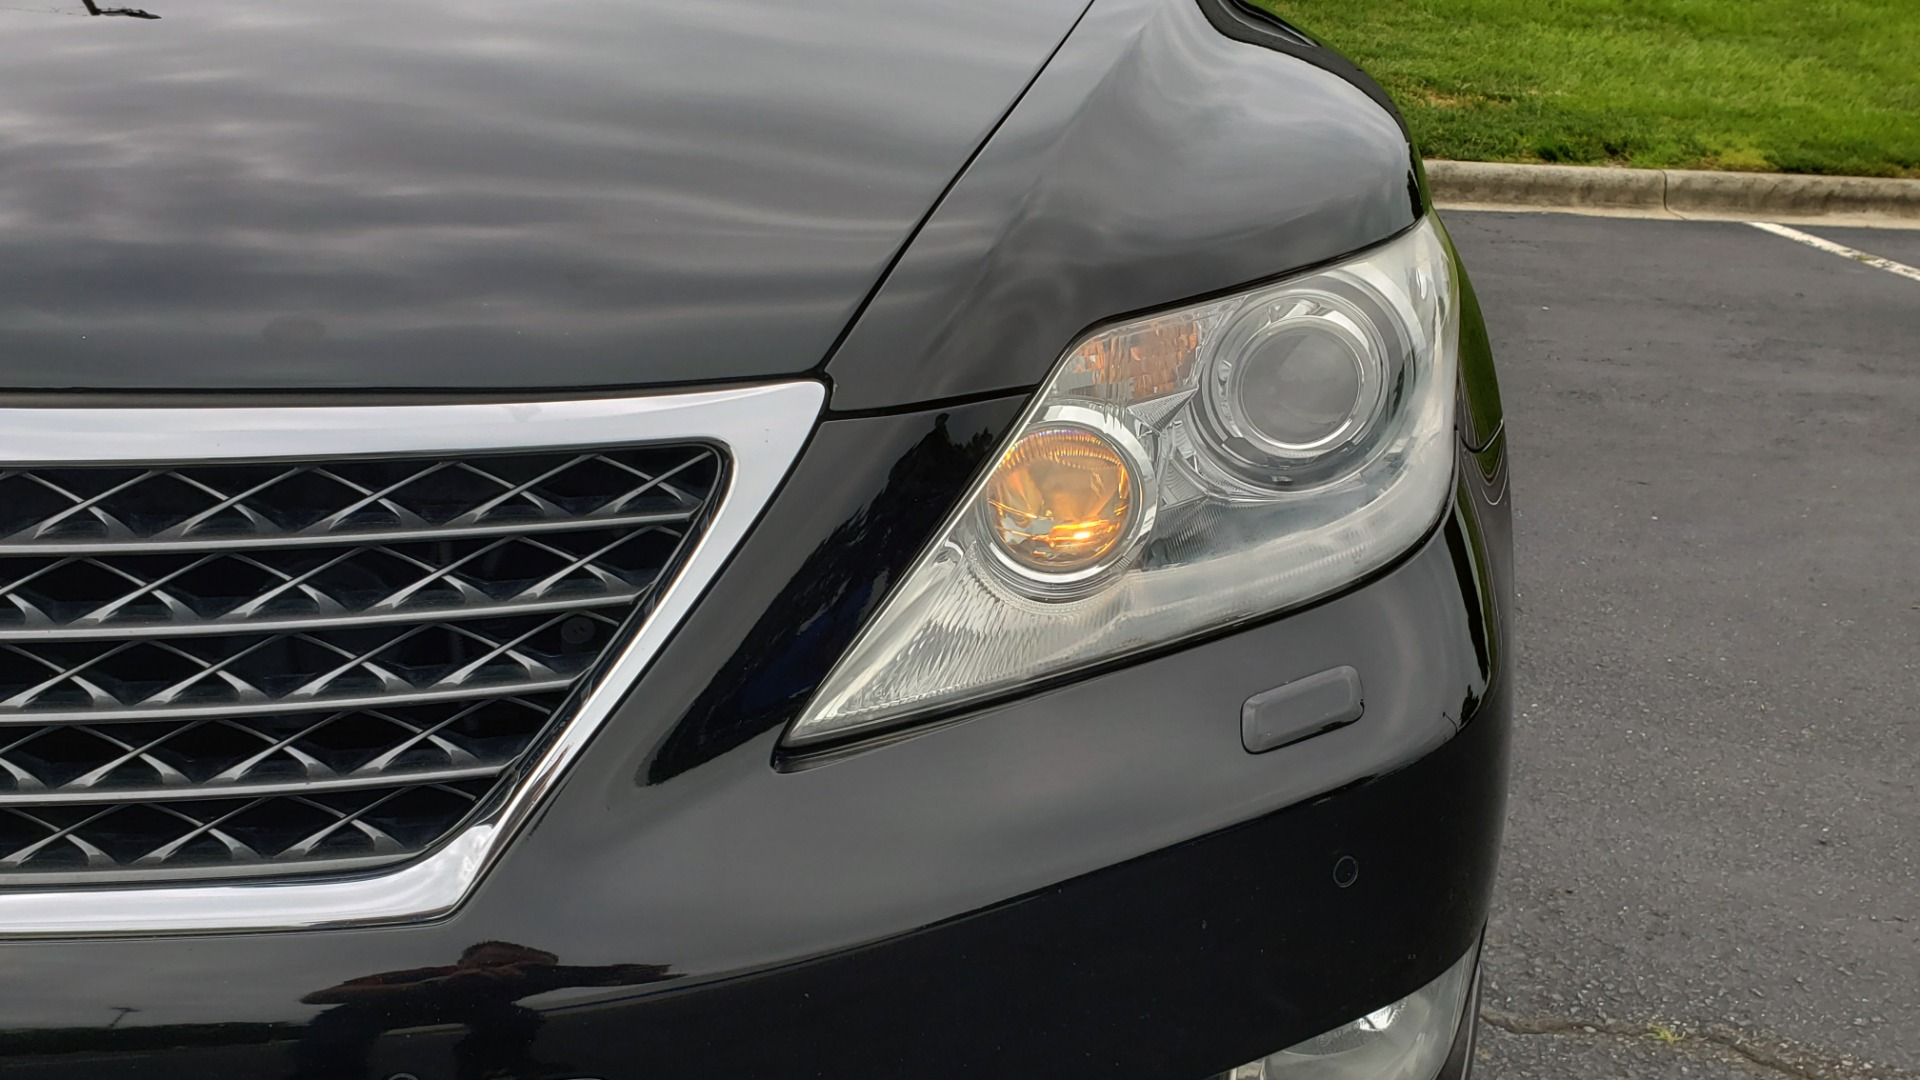 Used 2012 Lexus LS 460 COMFORT W/SPORT / VENT SEATS / NAV / MARK LEV SND / SUNROOF for sale Sold at Formula Imports in Charlotte NC 28227 24